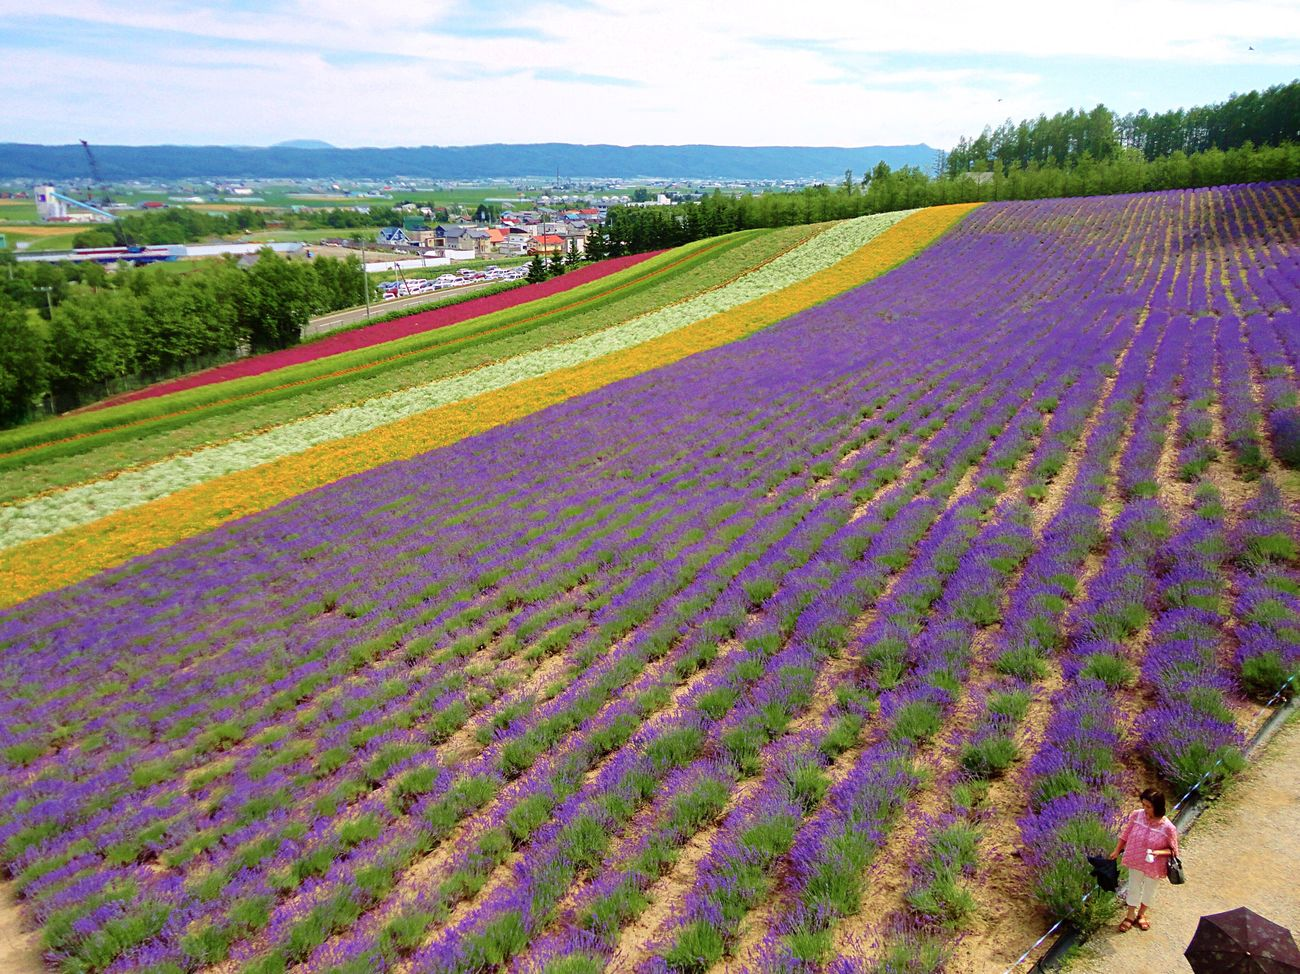 Farm Tomita Lavender Field Furano Hokkaido Flower Fantasy Lavender Flower Carpet Viewpoint ファーム富田 富良野 北海道 ラベンダー Hokkaido,Japan Flower Collection Colour Of Life Lavenderflower Lavender Farm Lavender Flowers Lavender Festival 2011memories Beautiful Flowers Enjoying Life Flower Field EyeEm Gallery ASIA